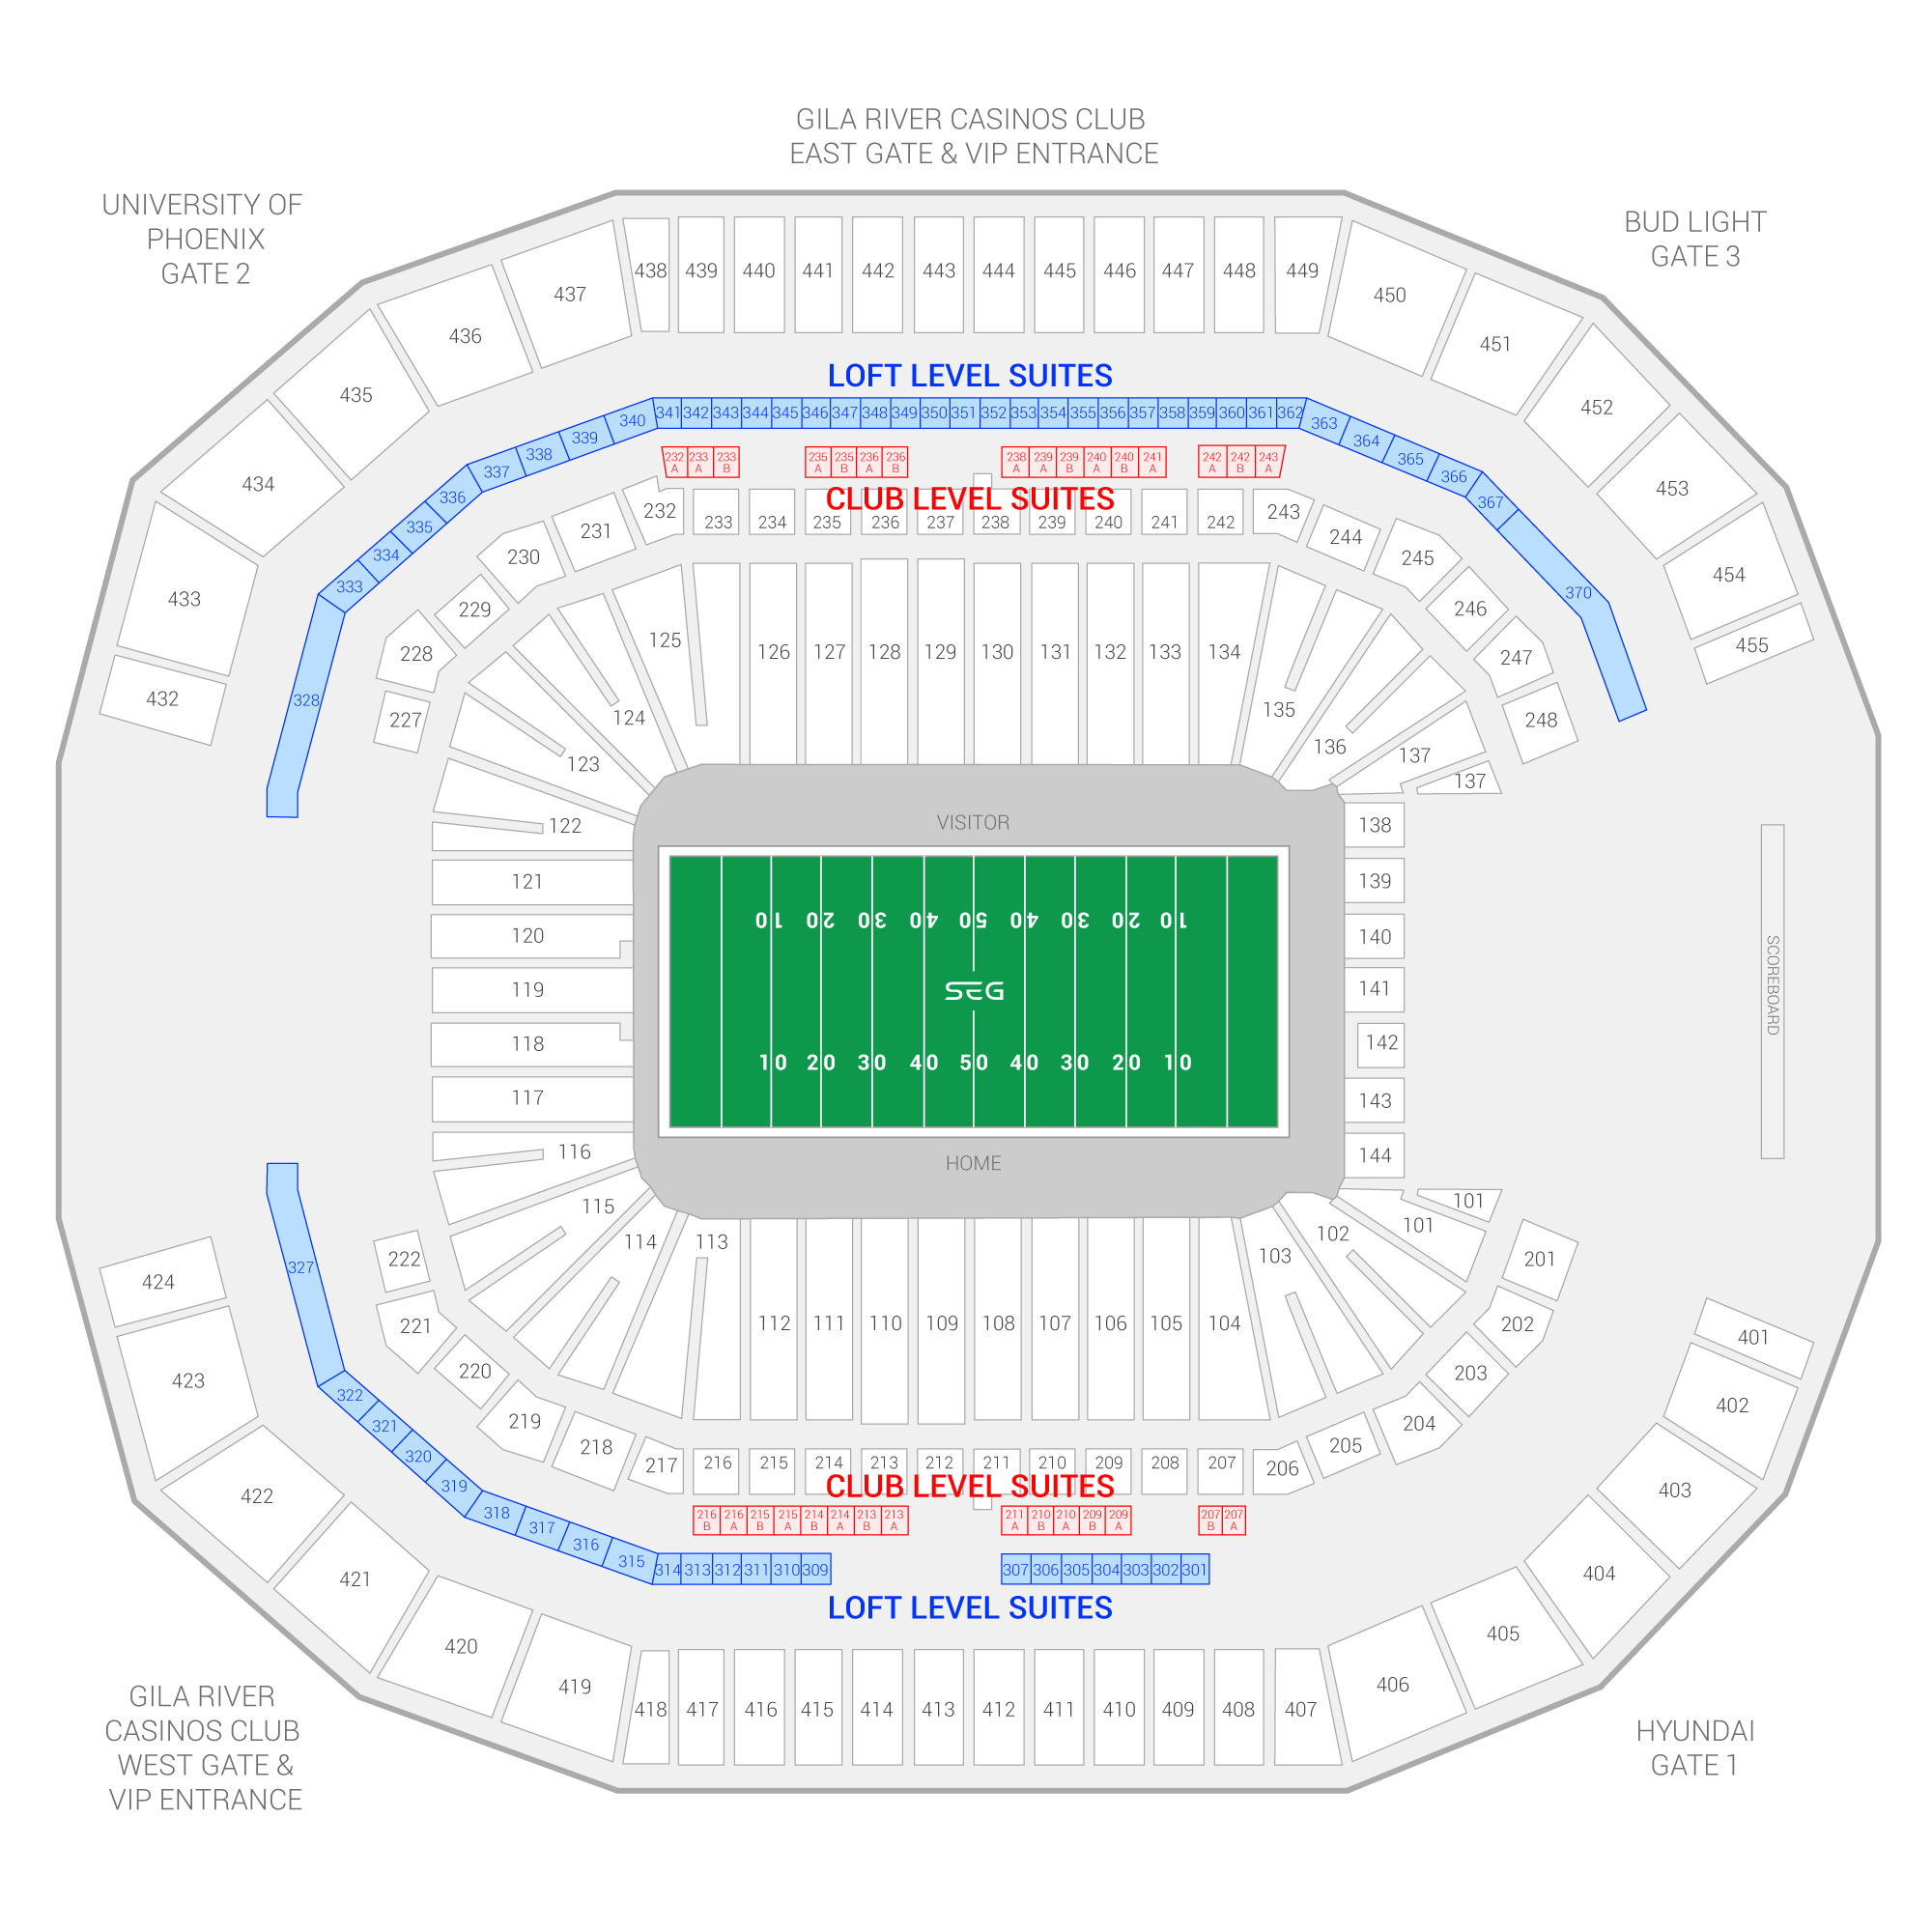 State Farm Stadium / Fiesta Bowl Suite Map and Seating Chart